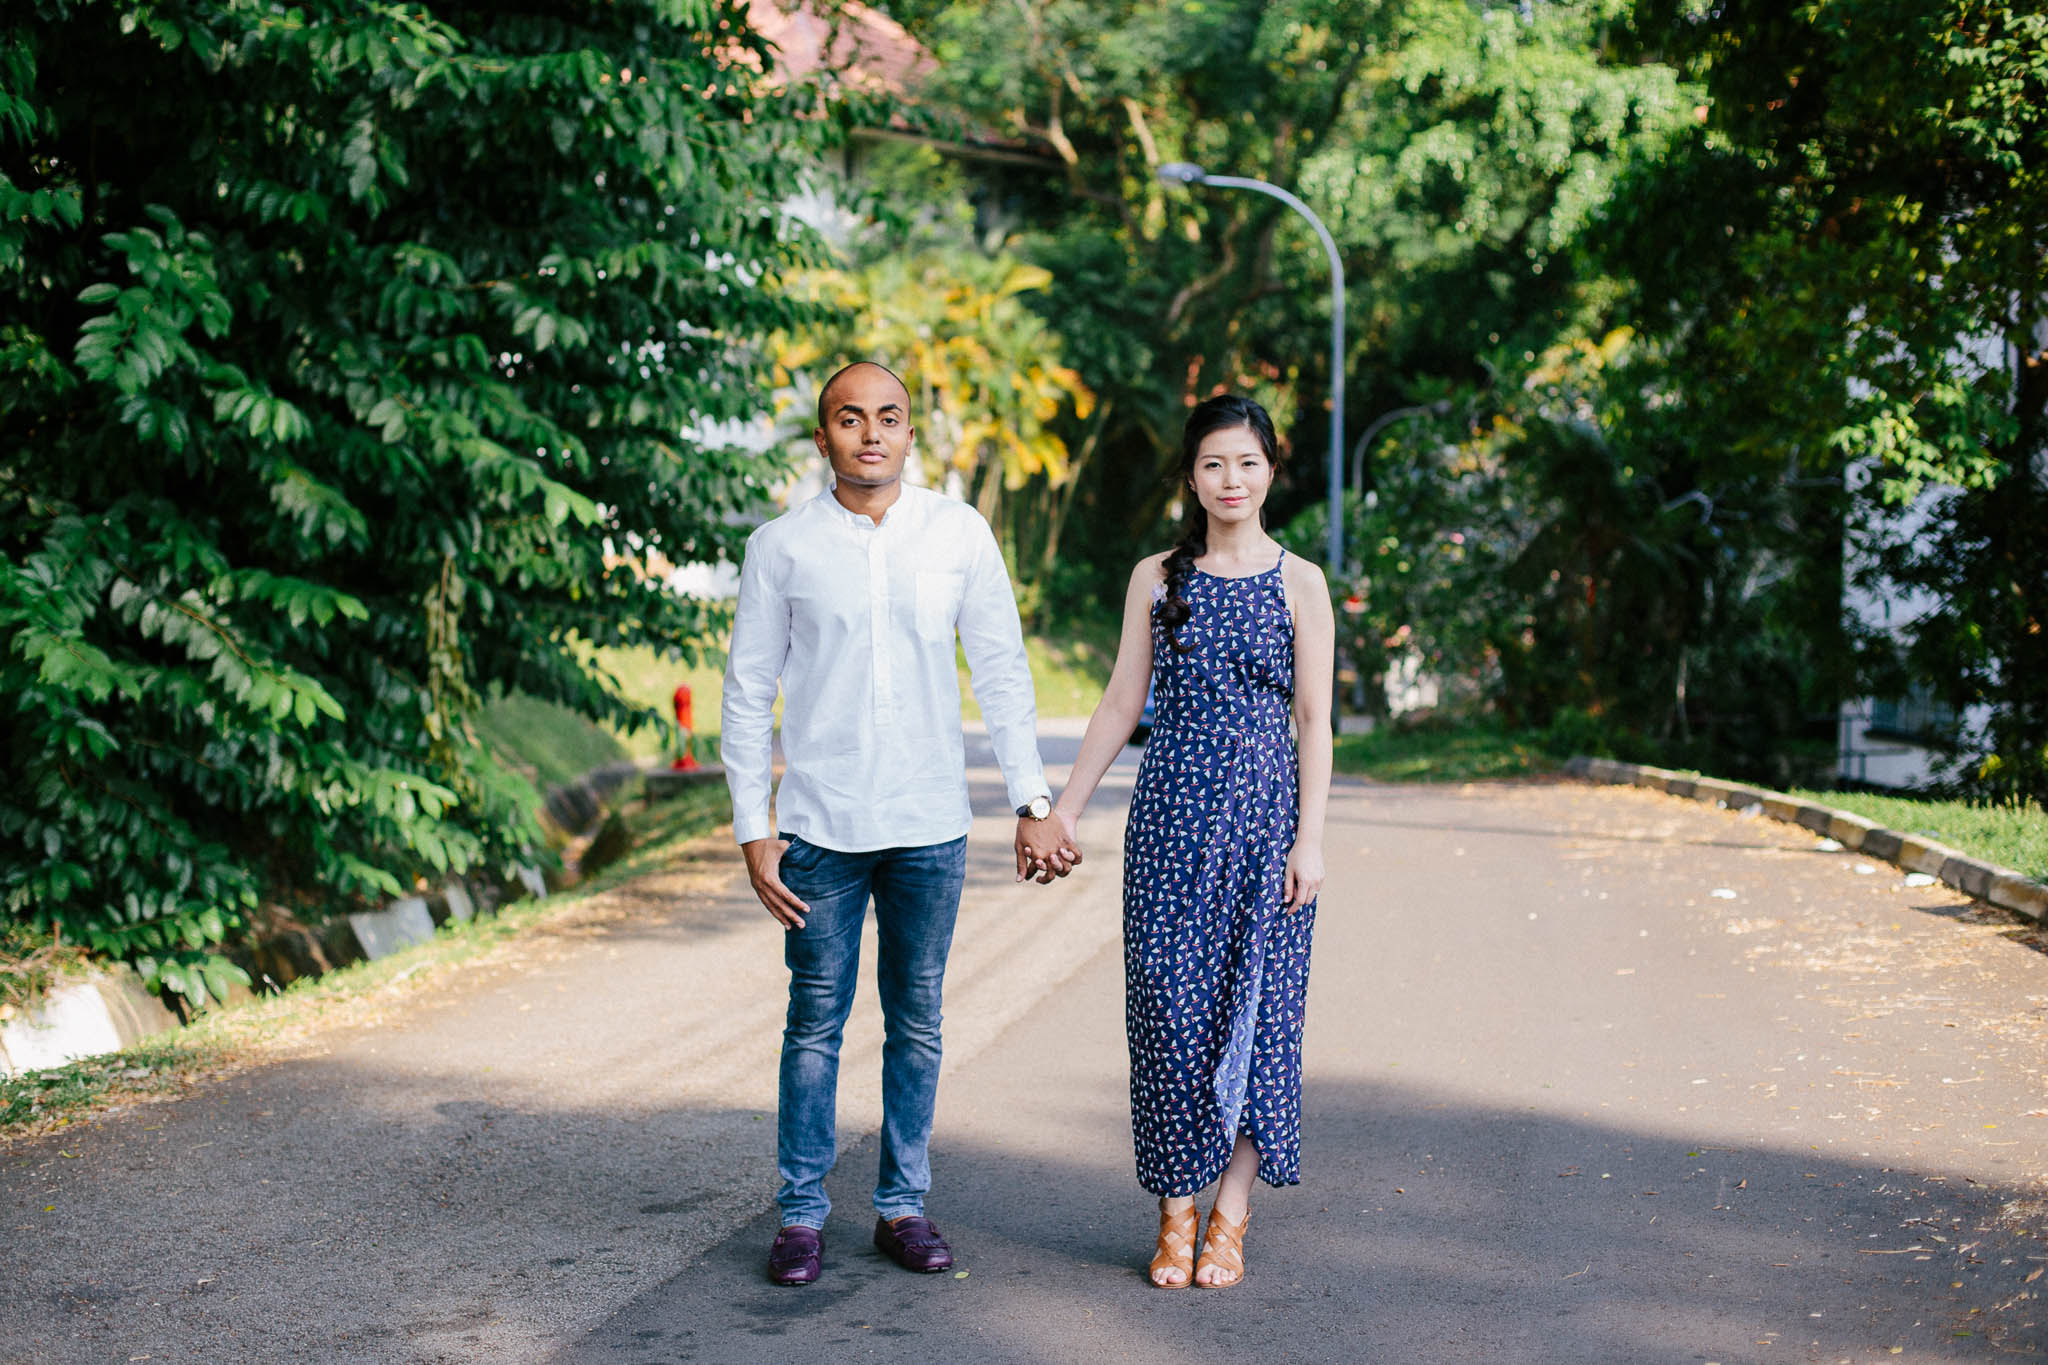 singapore-wedding-photographer-pre-wedding-jonathan-alicia-010.jpg